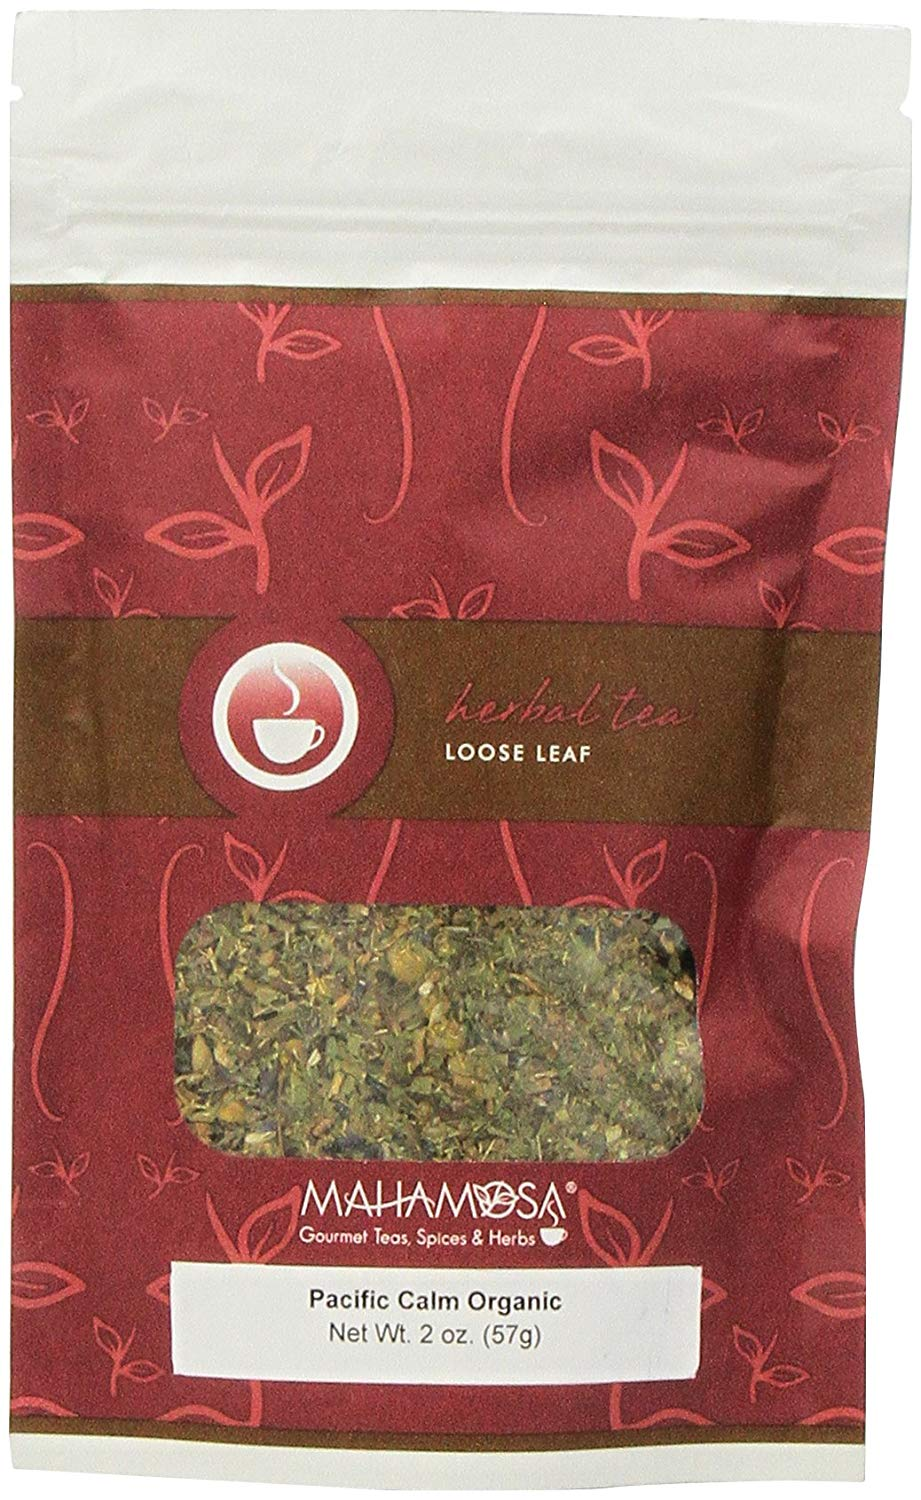 Mahamosa Pacific Calm Organic Tea 2 oz, Loose Leaf Herbal Herb Tea Blend (with valerian root, lemon verbena, lemon balm, chamomile, lavender, spearmint)